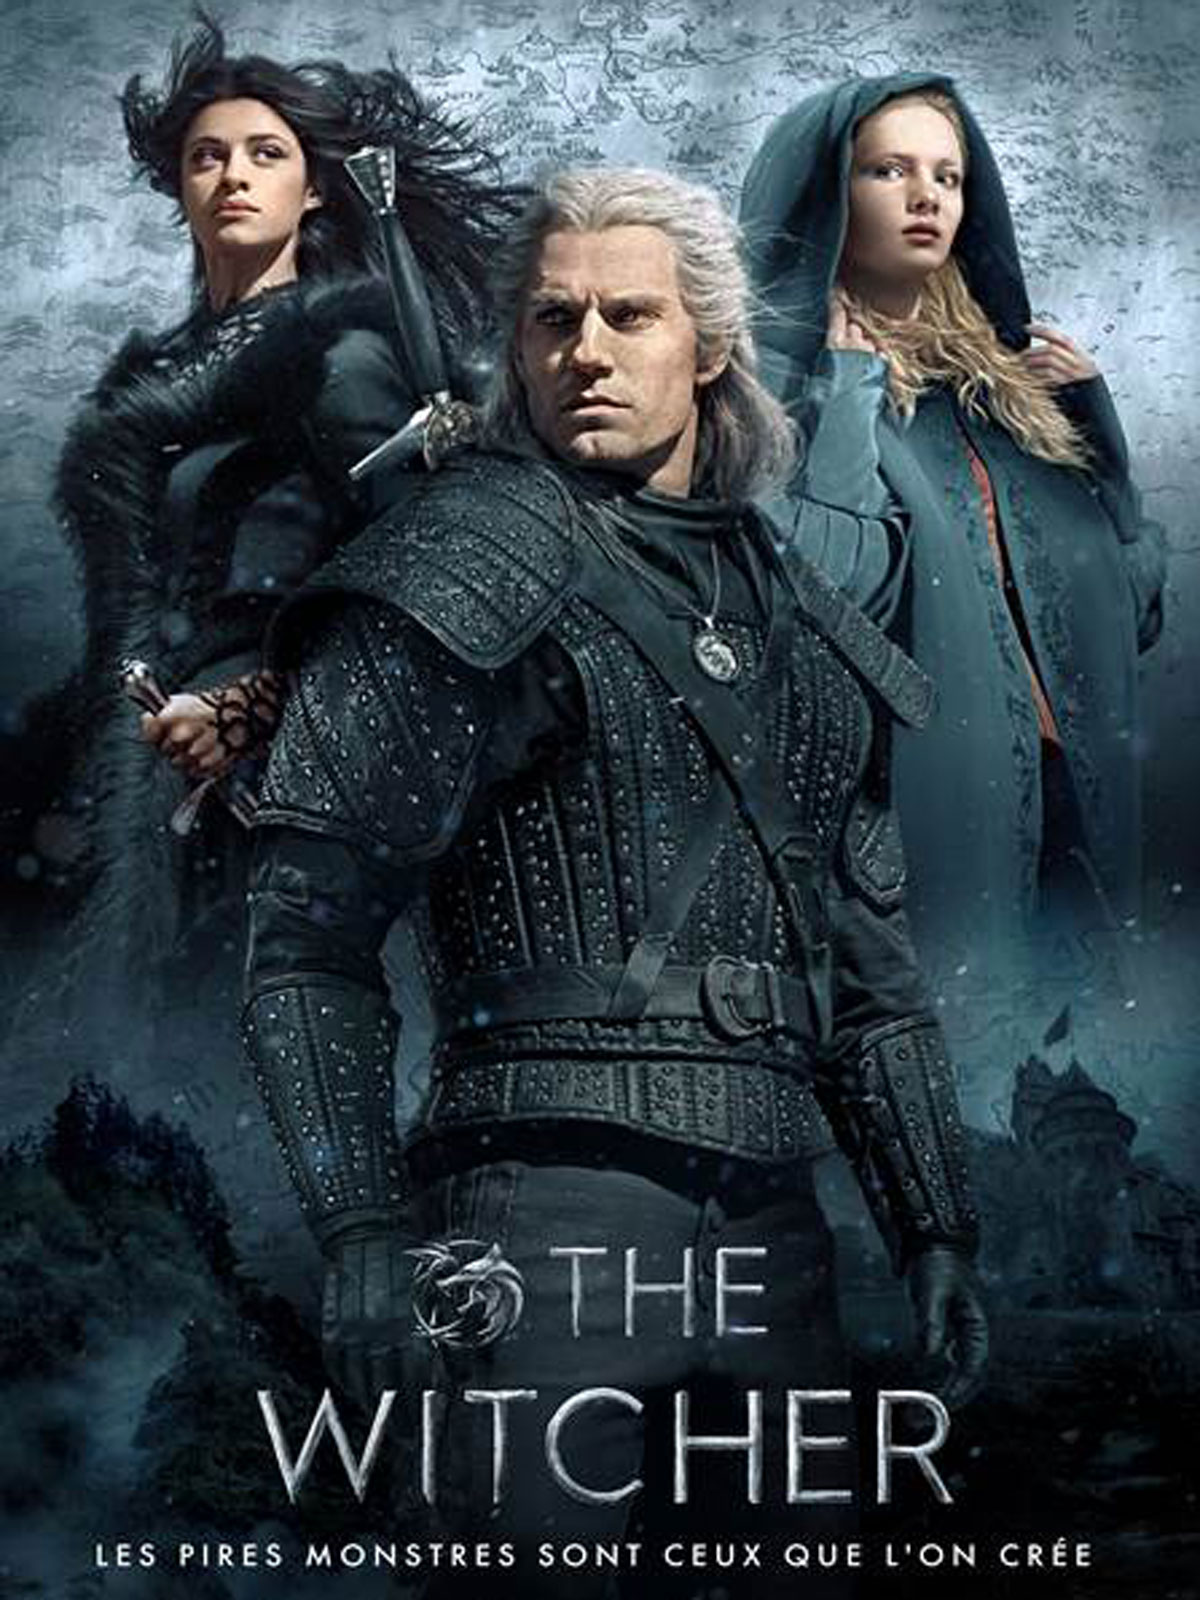 5 - The Witcher